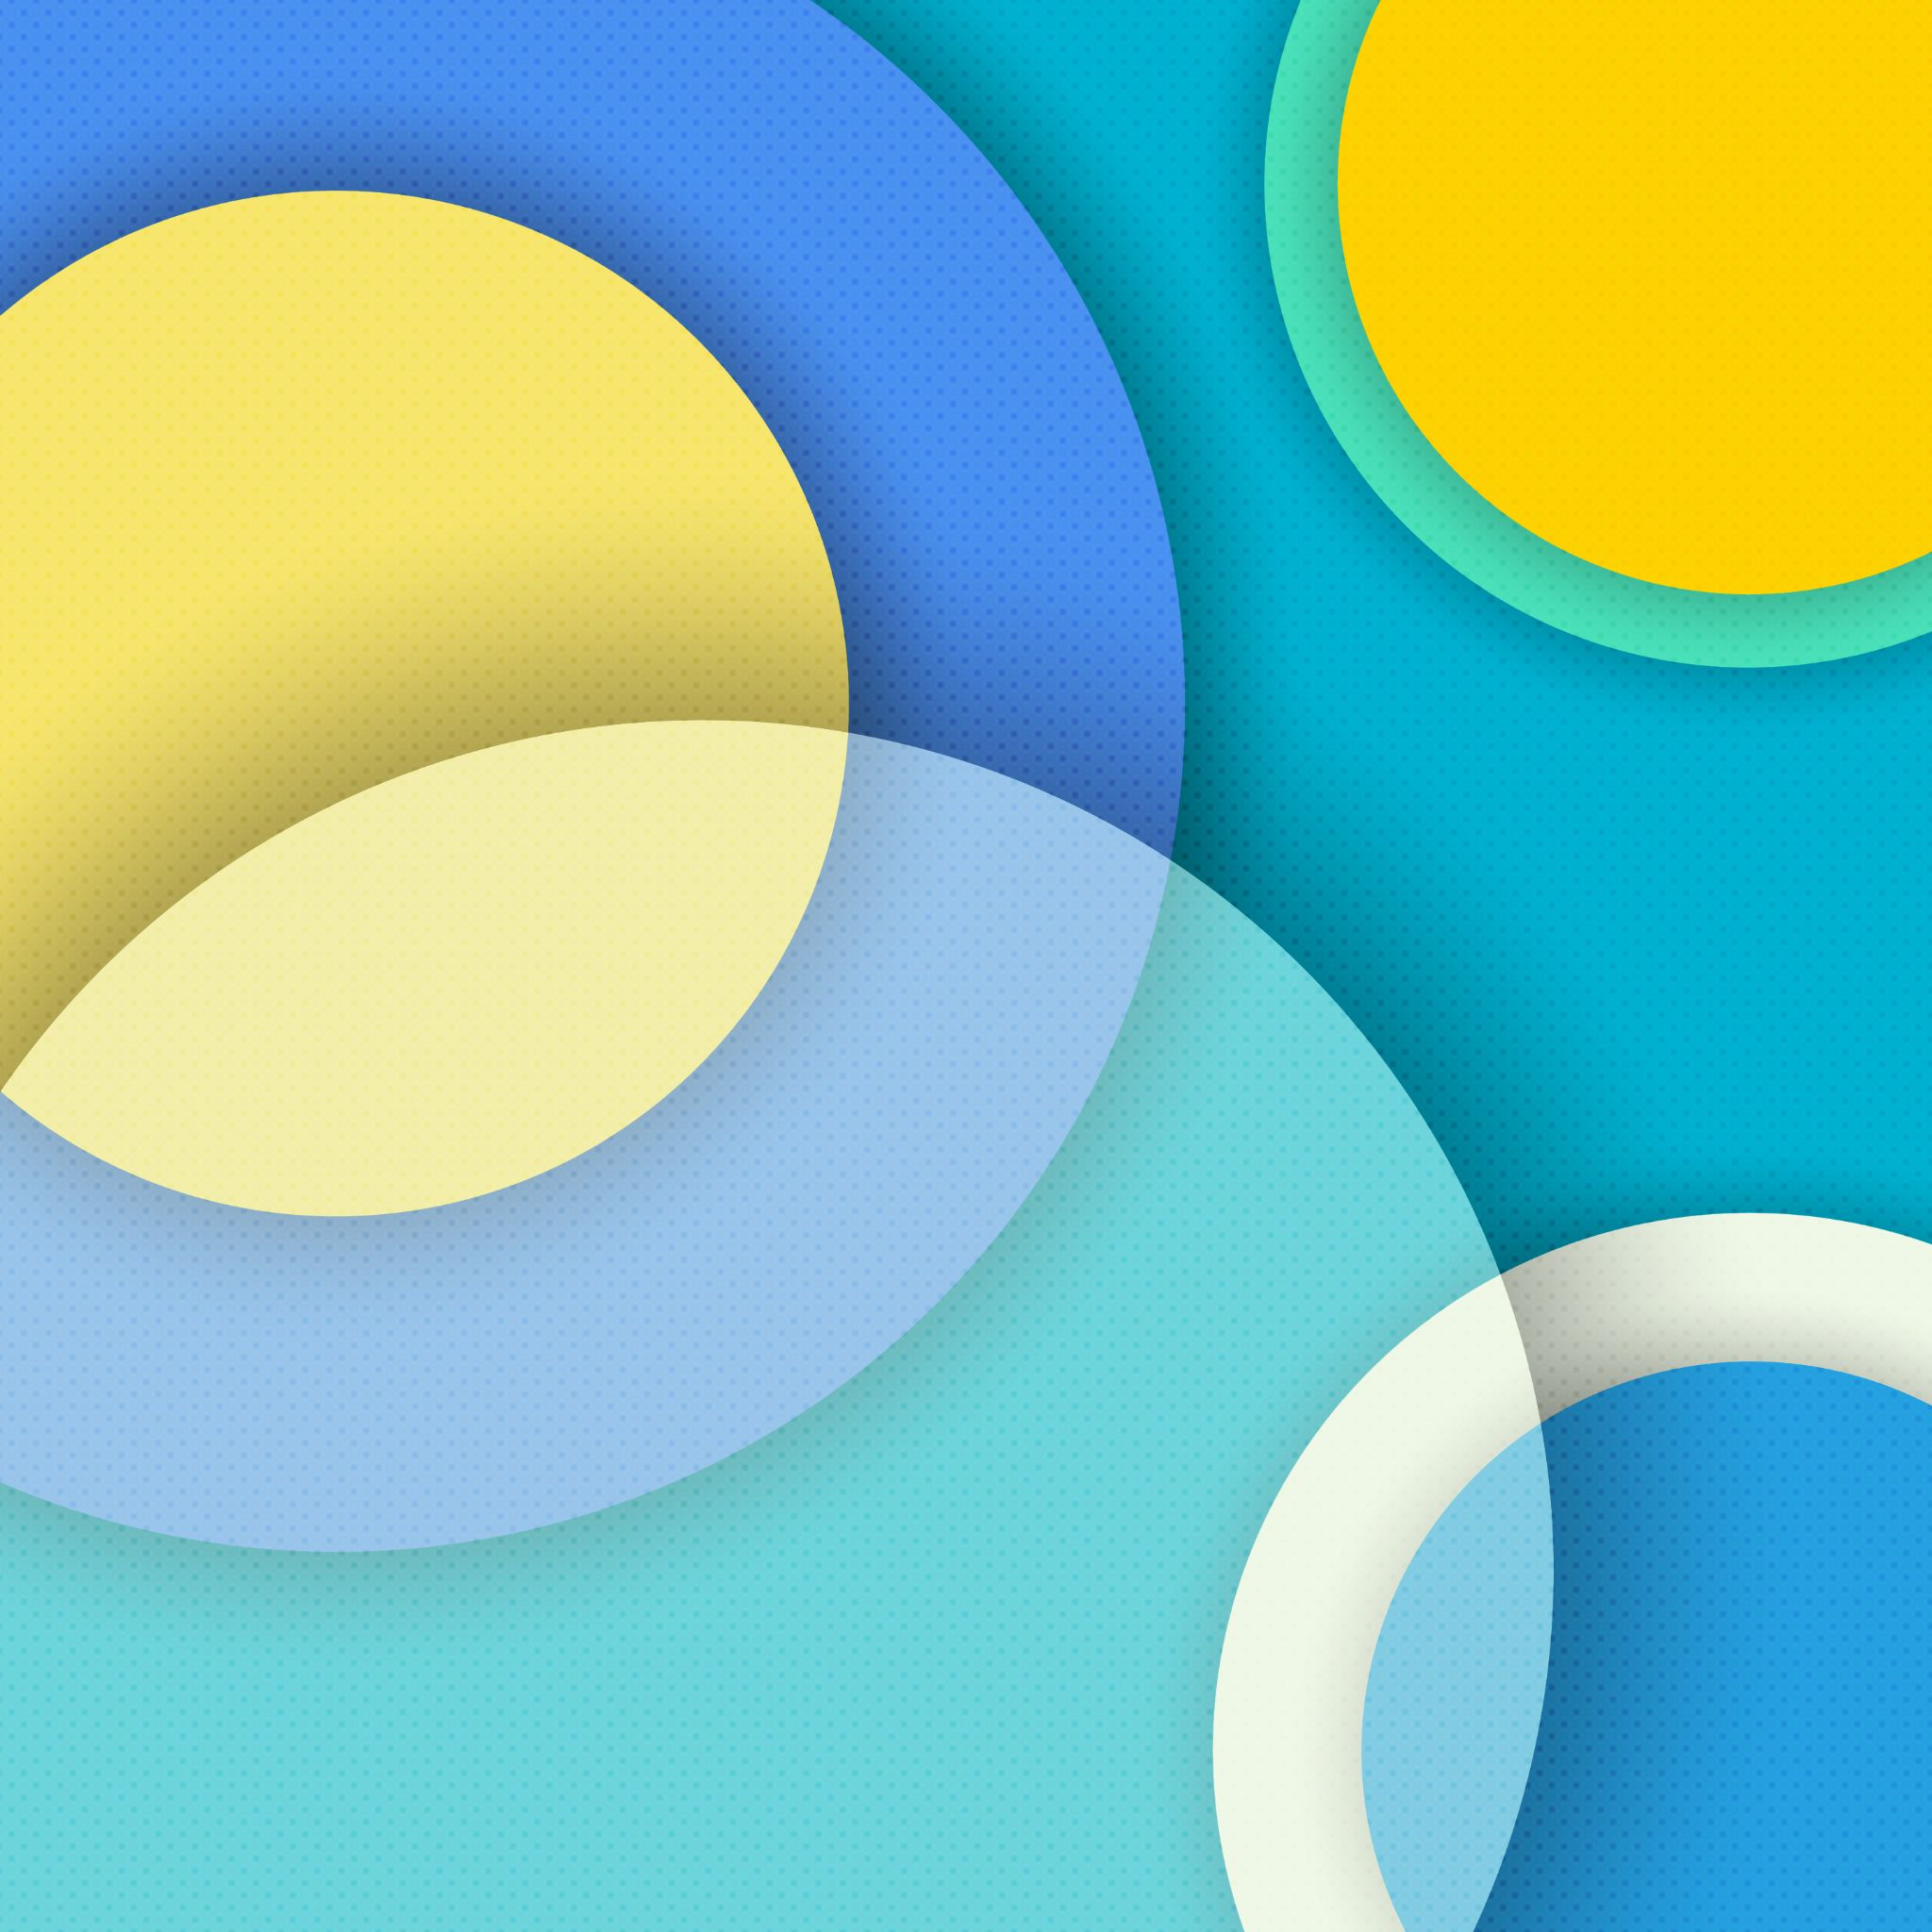 android lollipop blue tap to see more beautiful abstract wallpapers